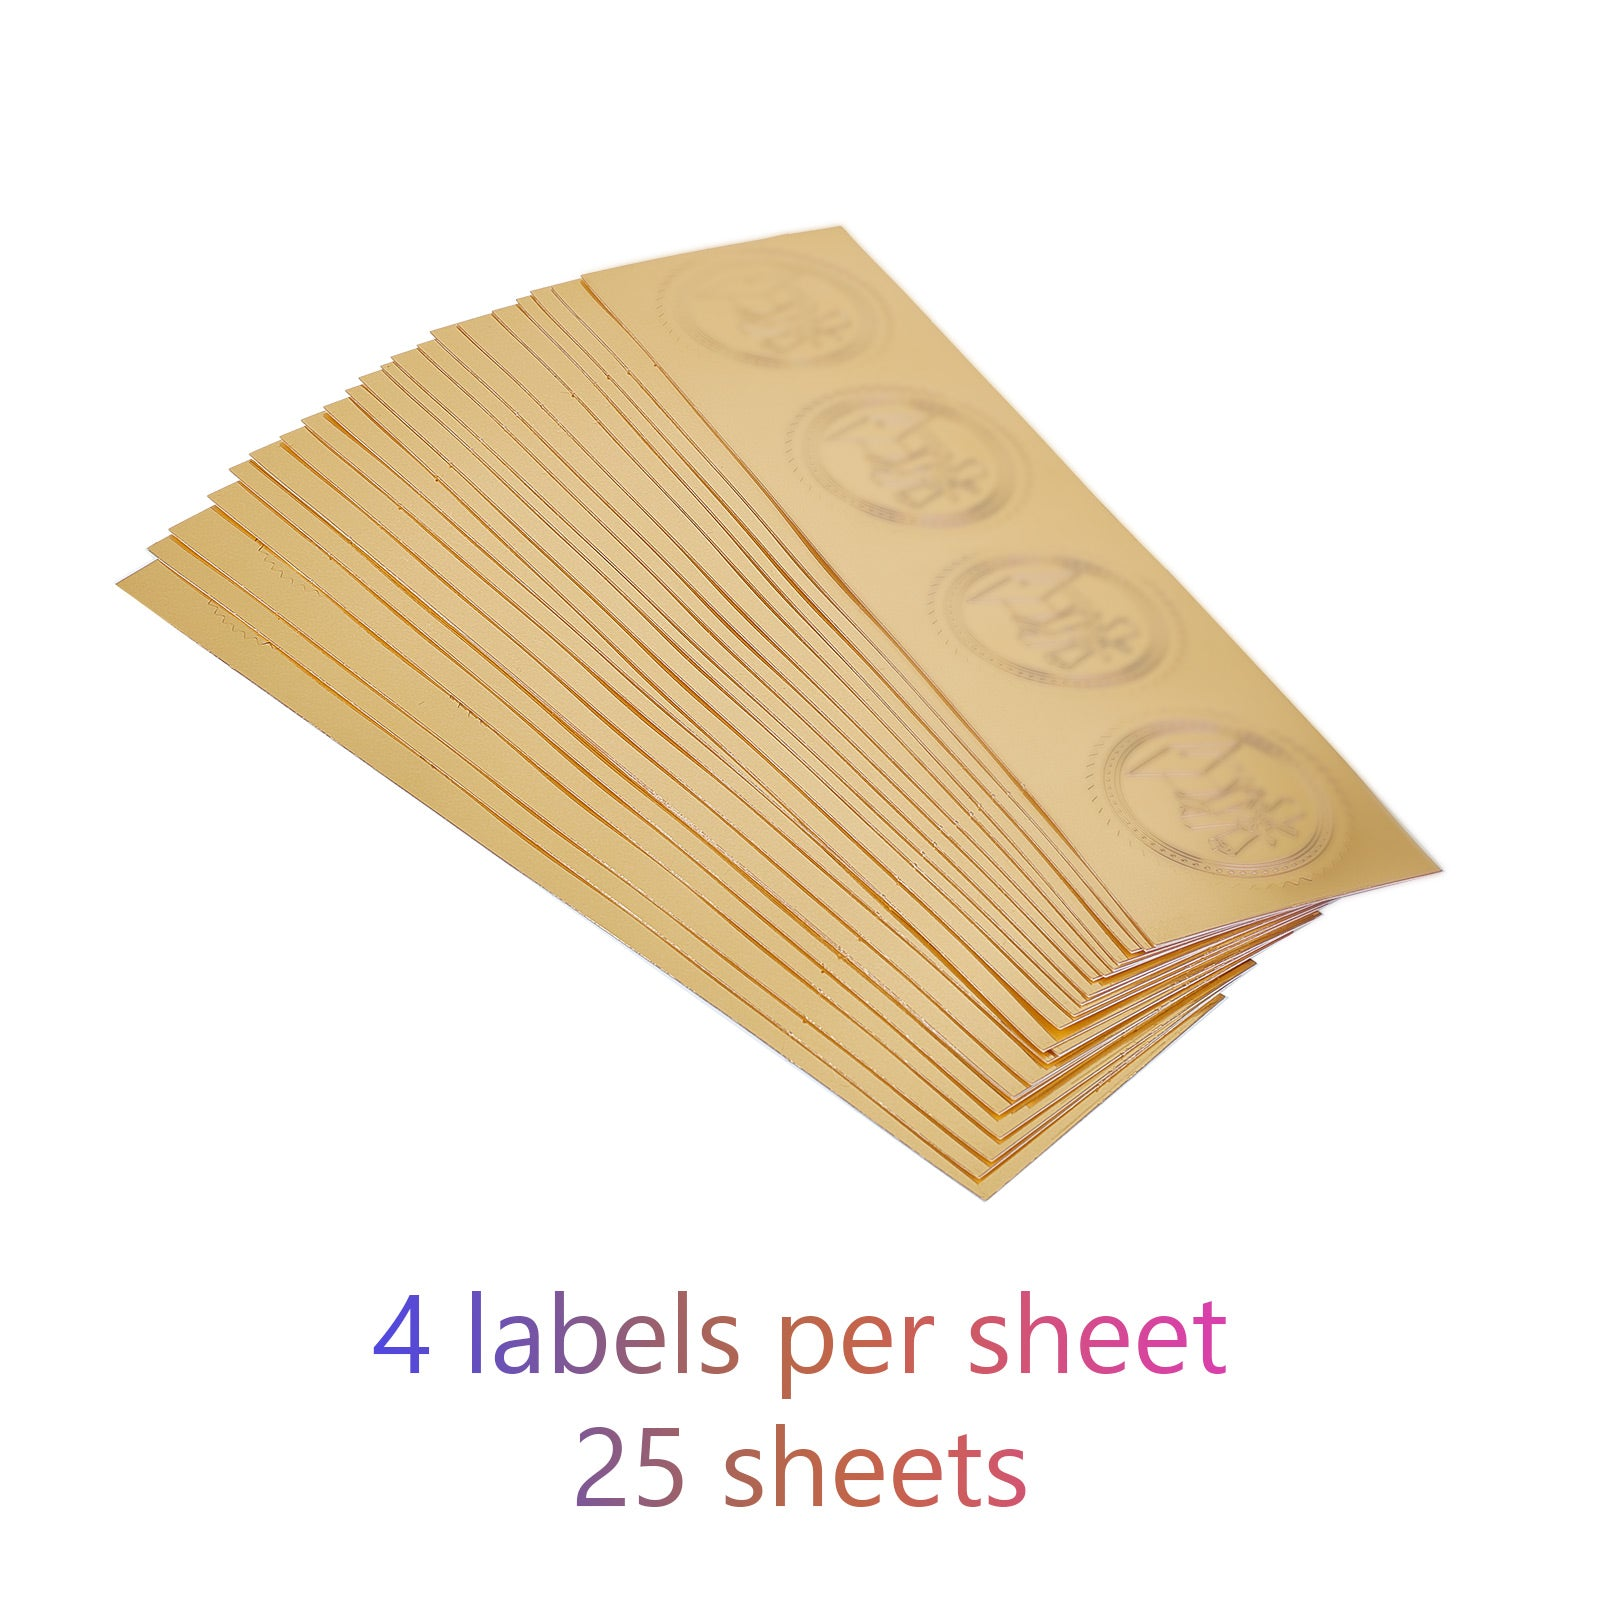 100pcs Embossed Gold Foil Certificate Seals Self Adhesive Stickers-16